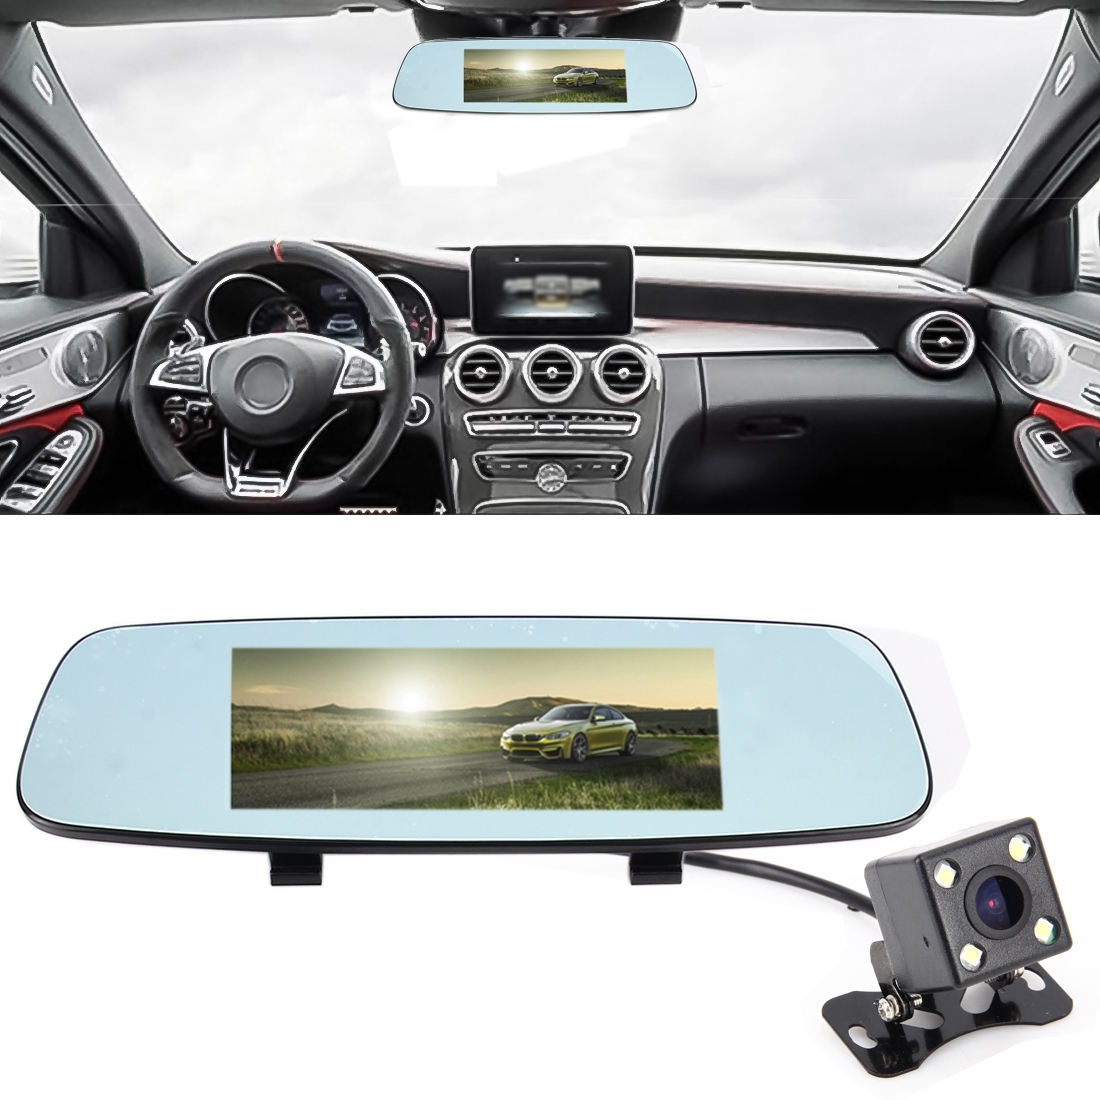 X9s Multi Functional Smart Car Rear View Mirror Video Record Camera